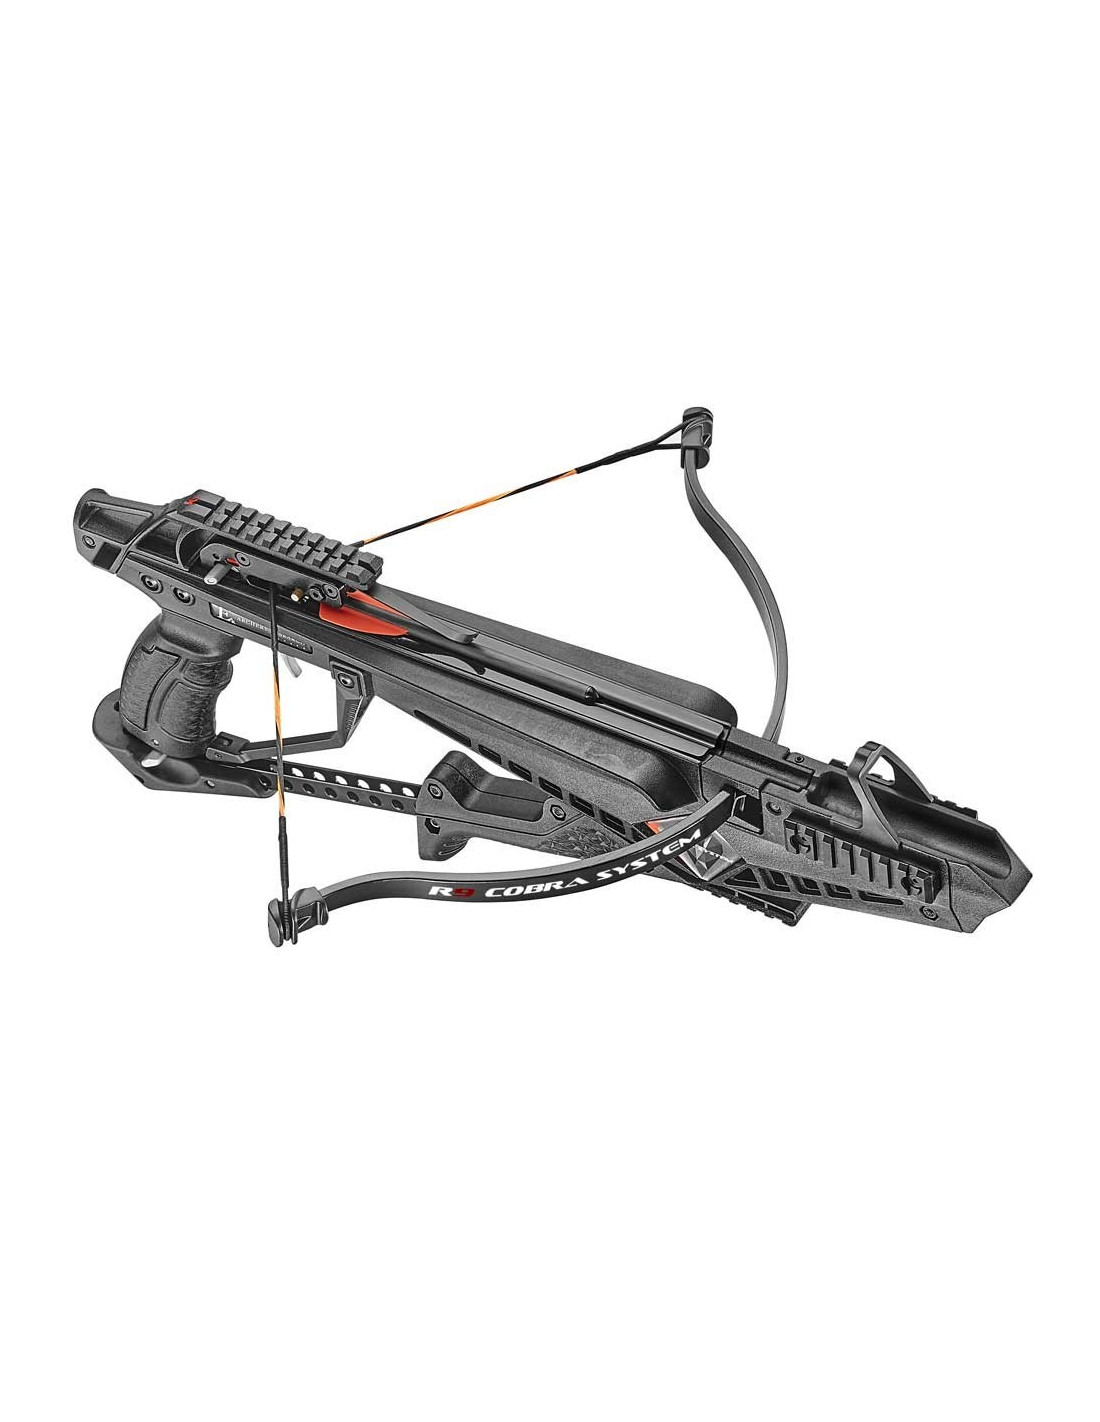 Crossbow 90 lbs EK-Archery Cobra R9 Simple